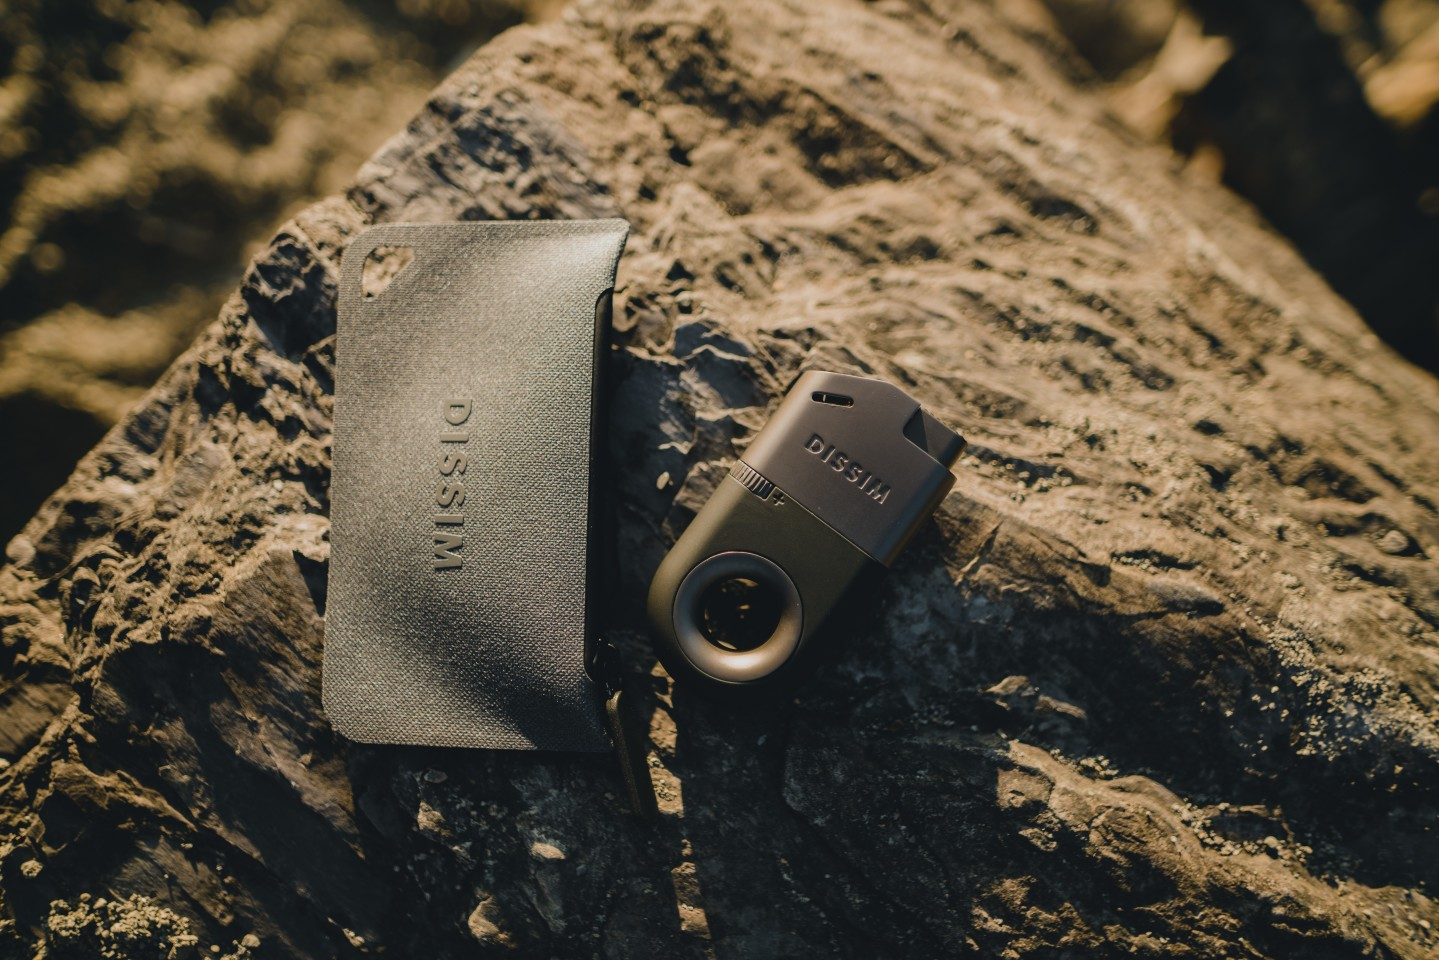 The available water-resistant case protects the lighter